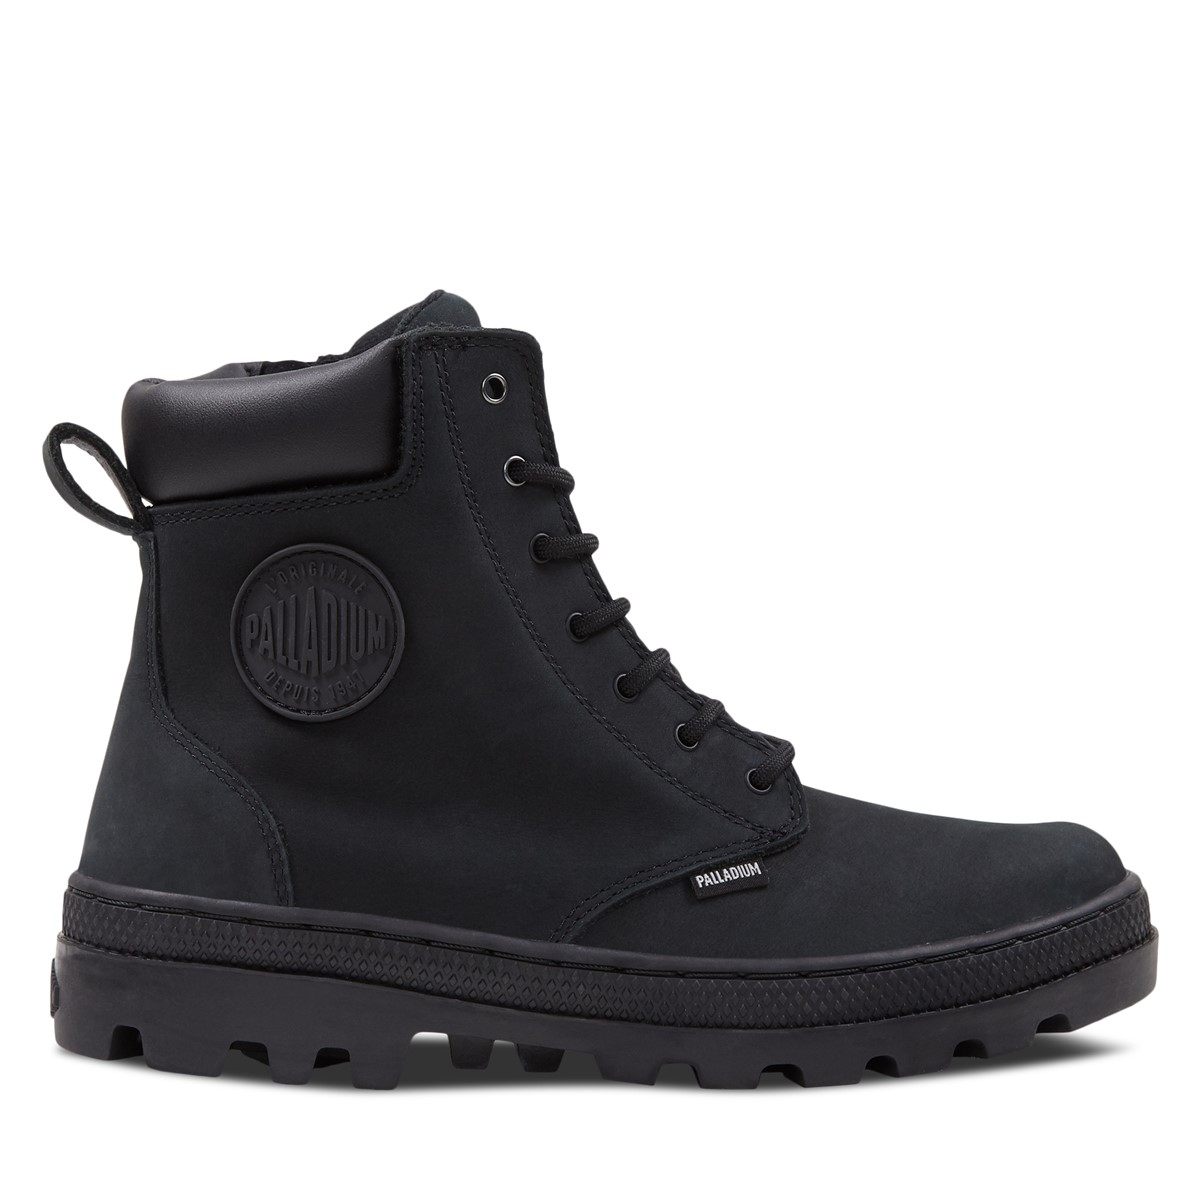 Women's Pallaboss SC Boots in Black